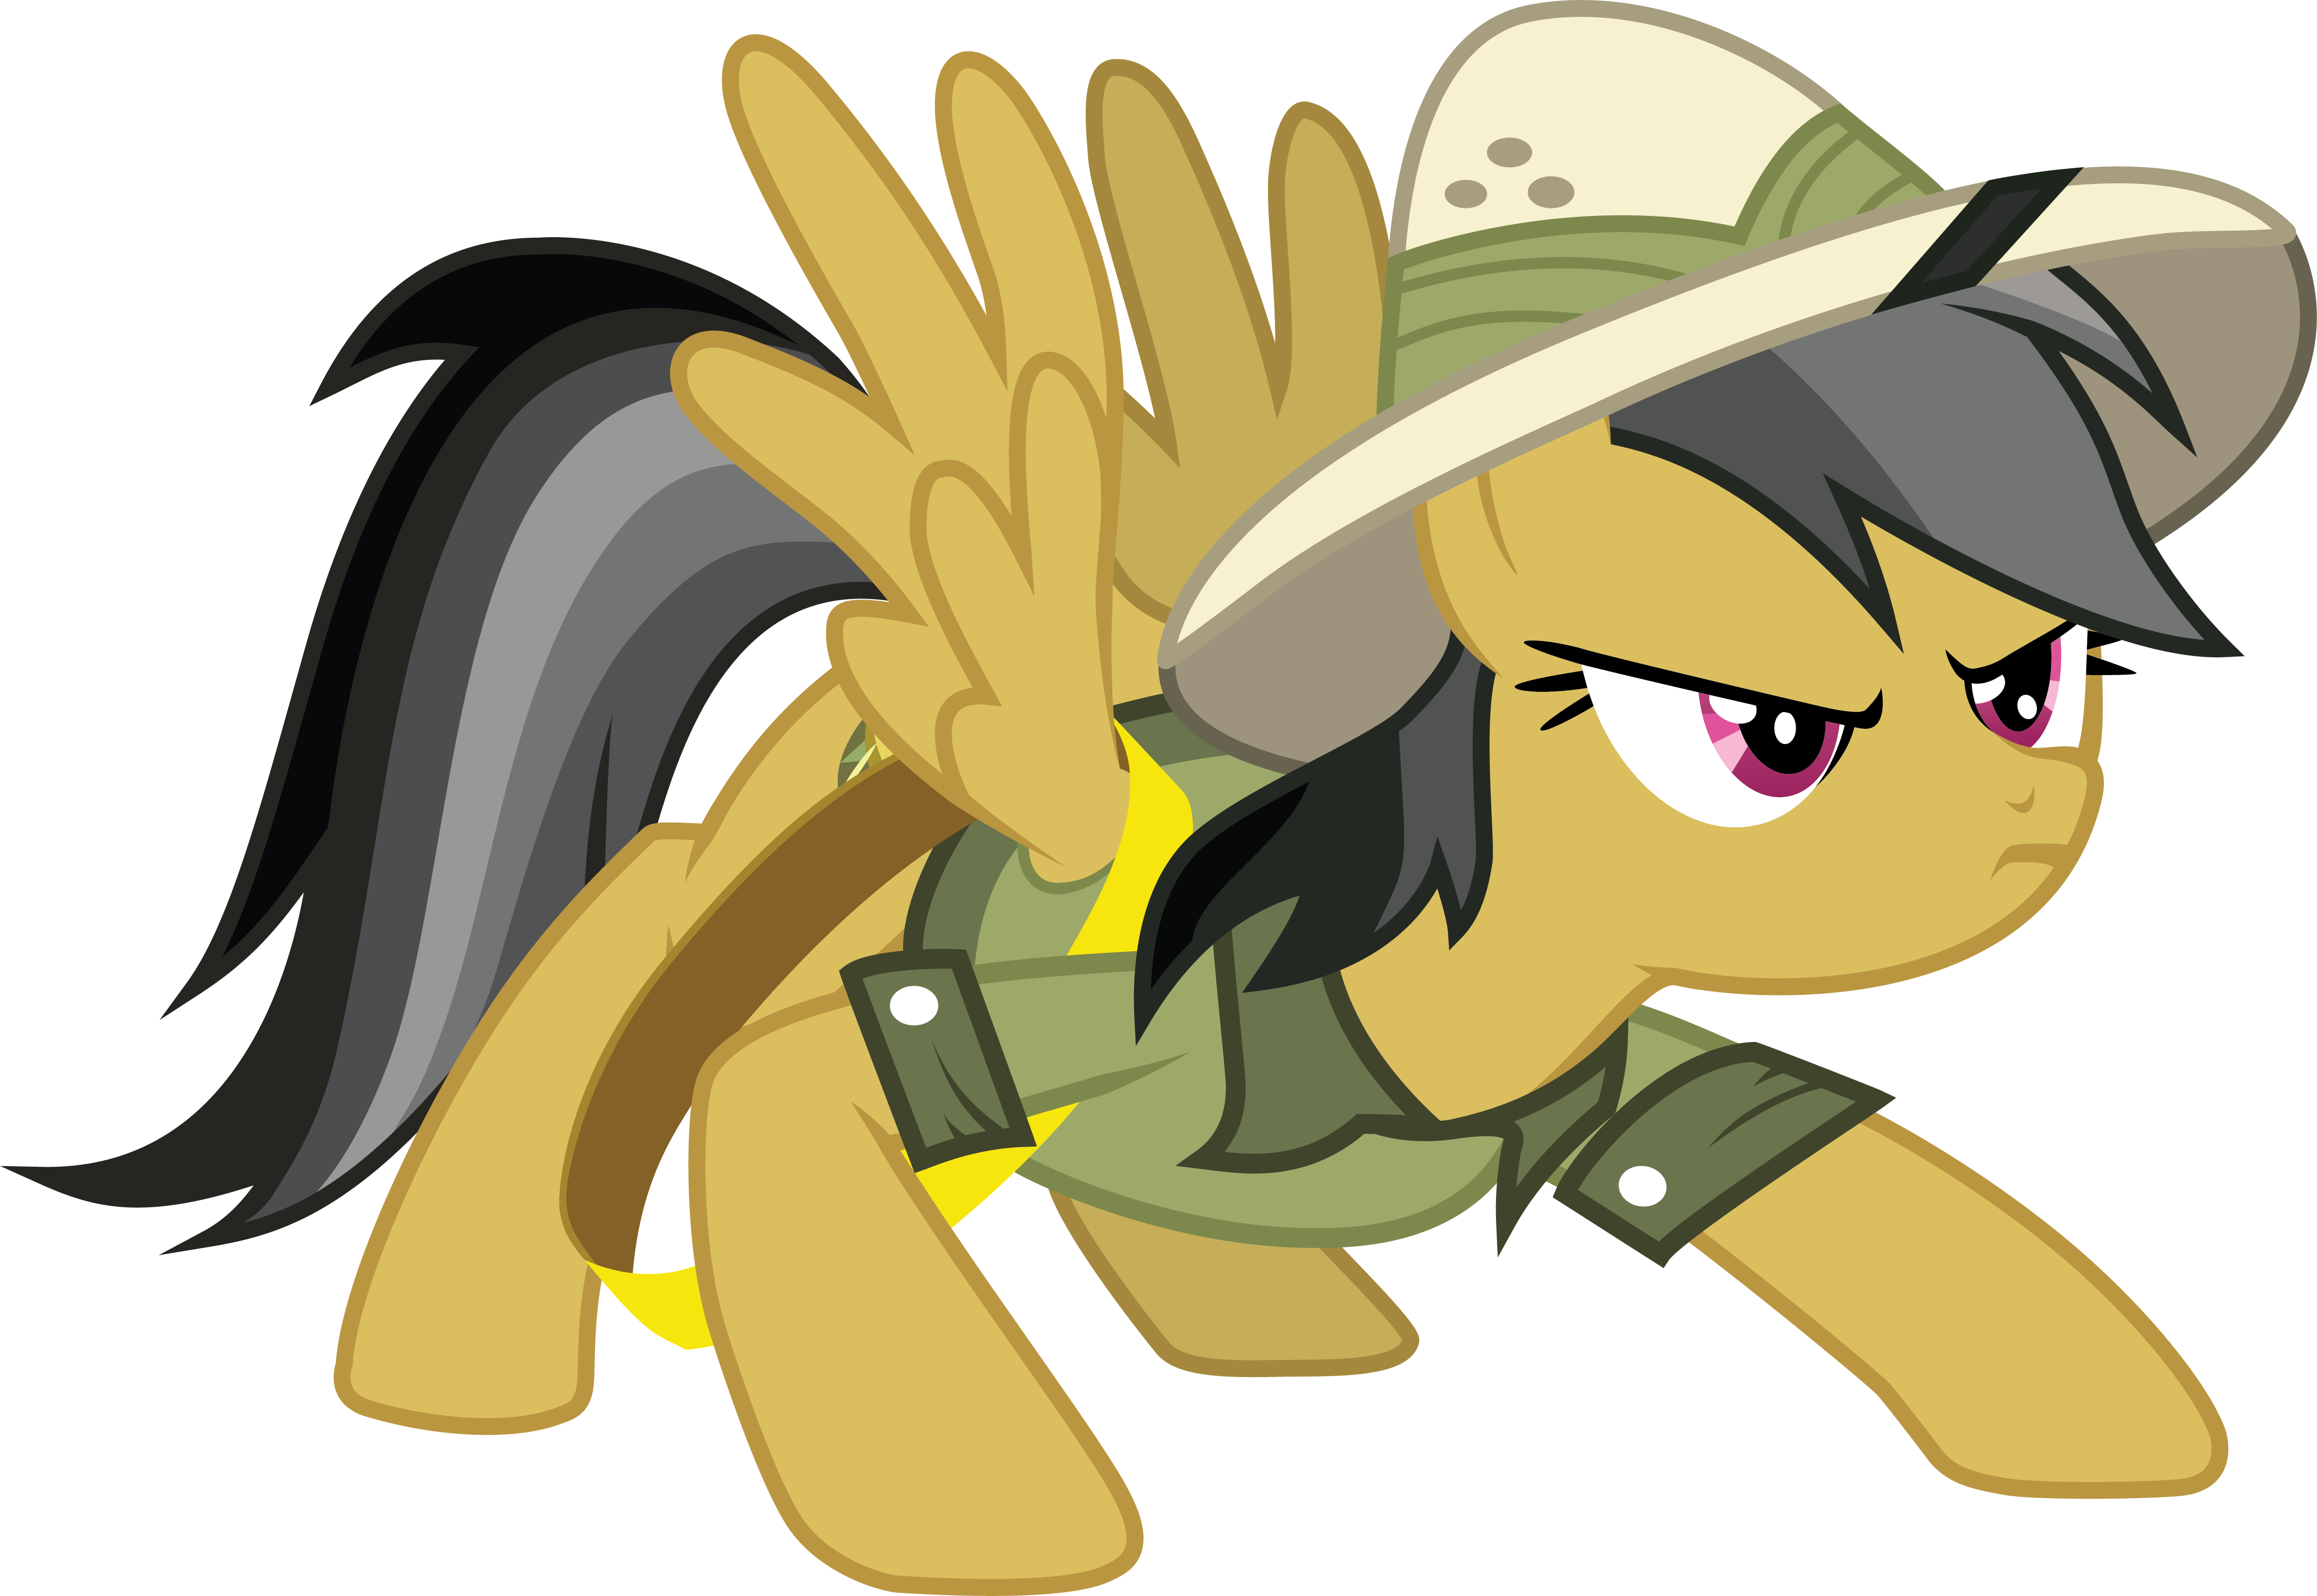 Daring Do Braces for Action by SNX11 on DeviantArt